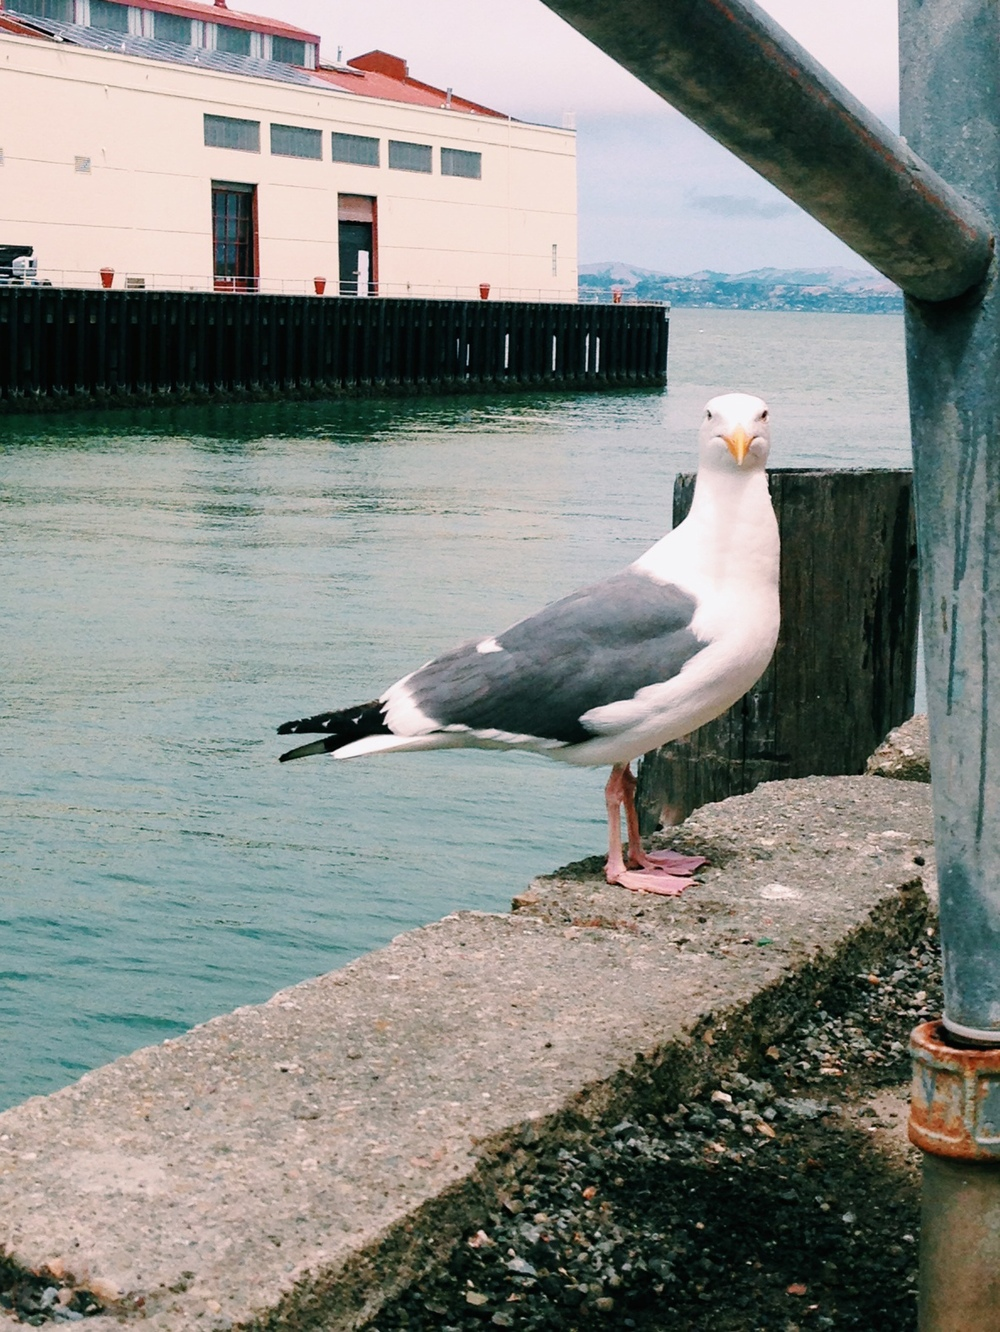 Even the Seagulls are happy in SF